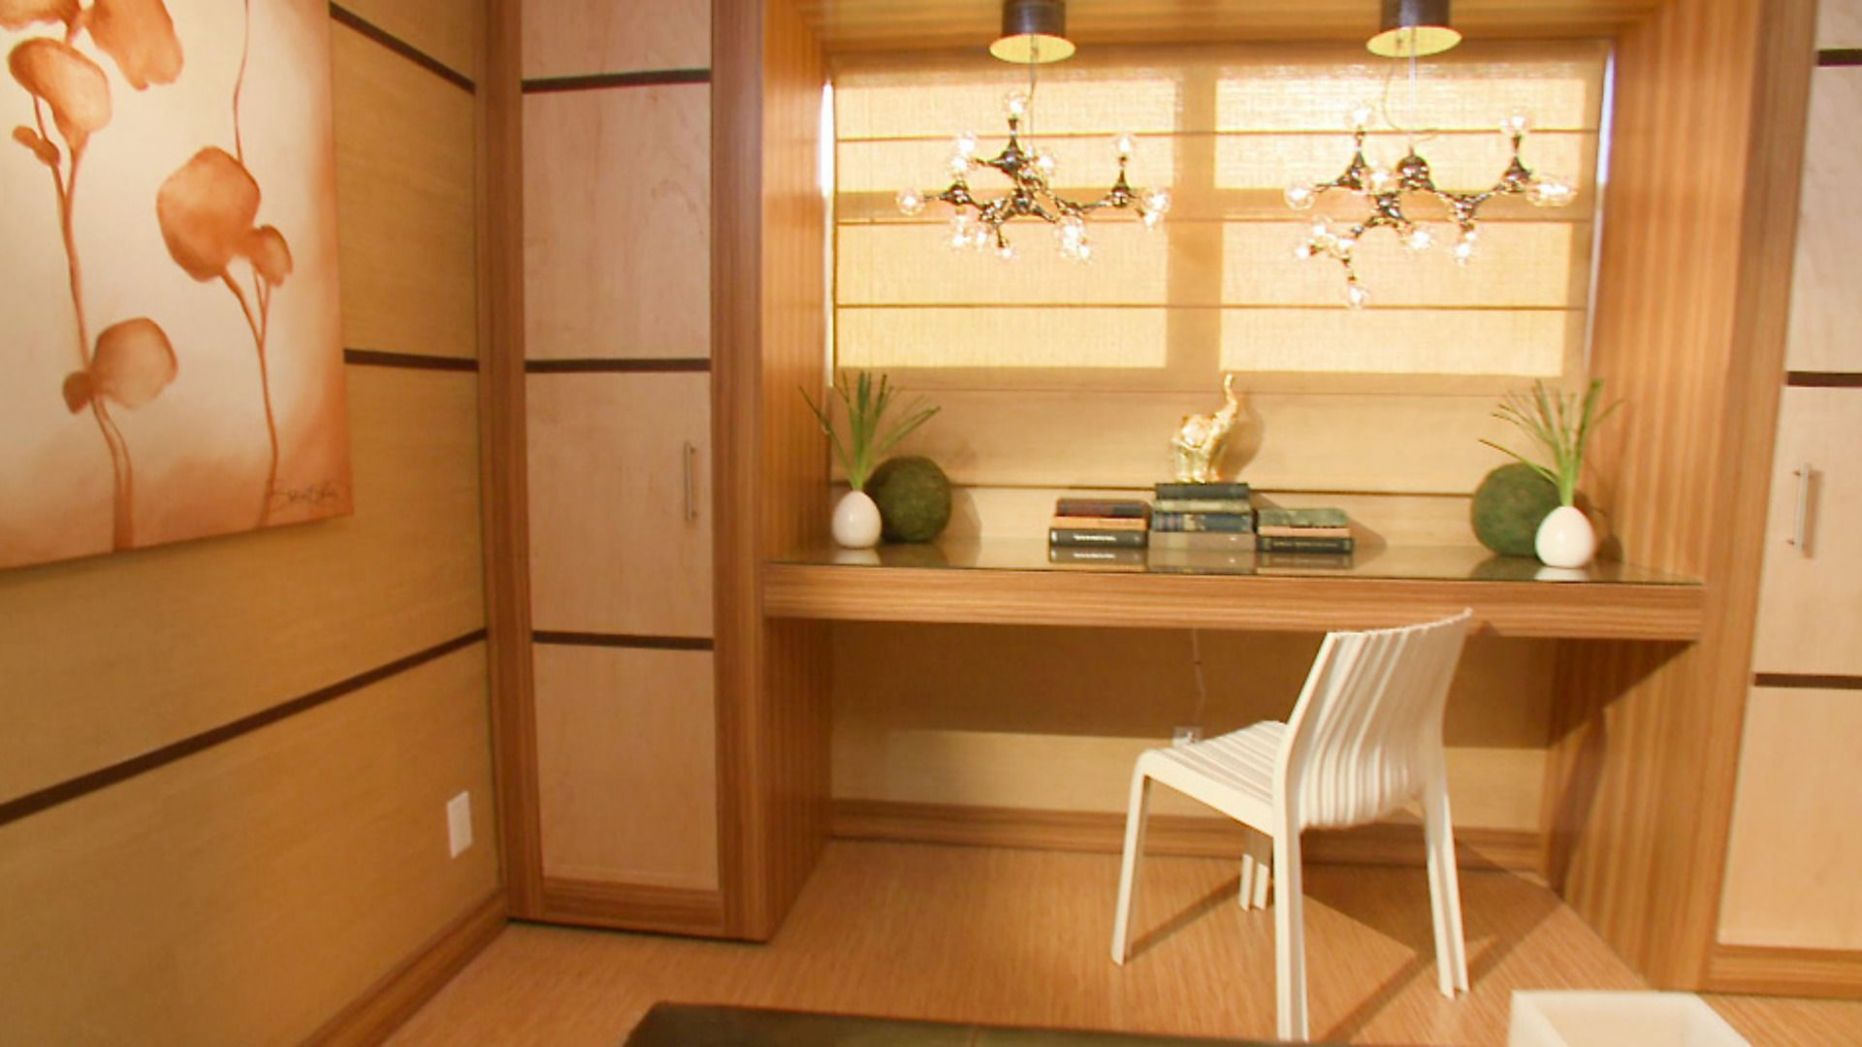 David fuses beauty and function in a Zen home office space ..